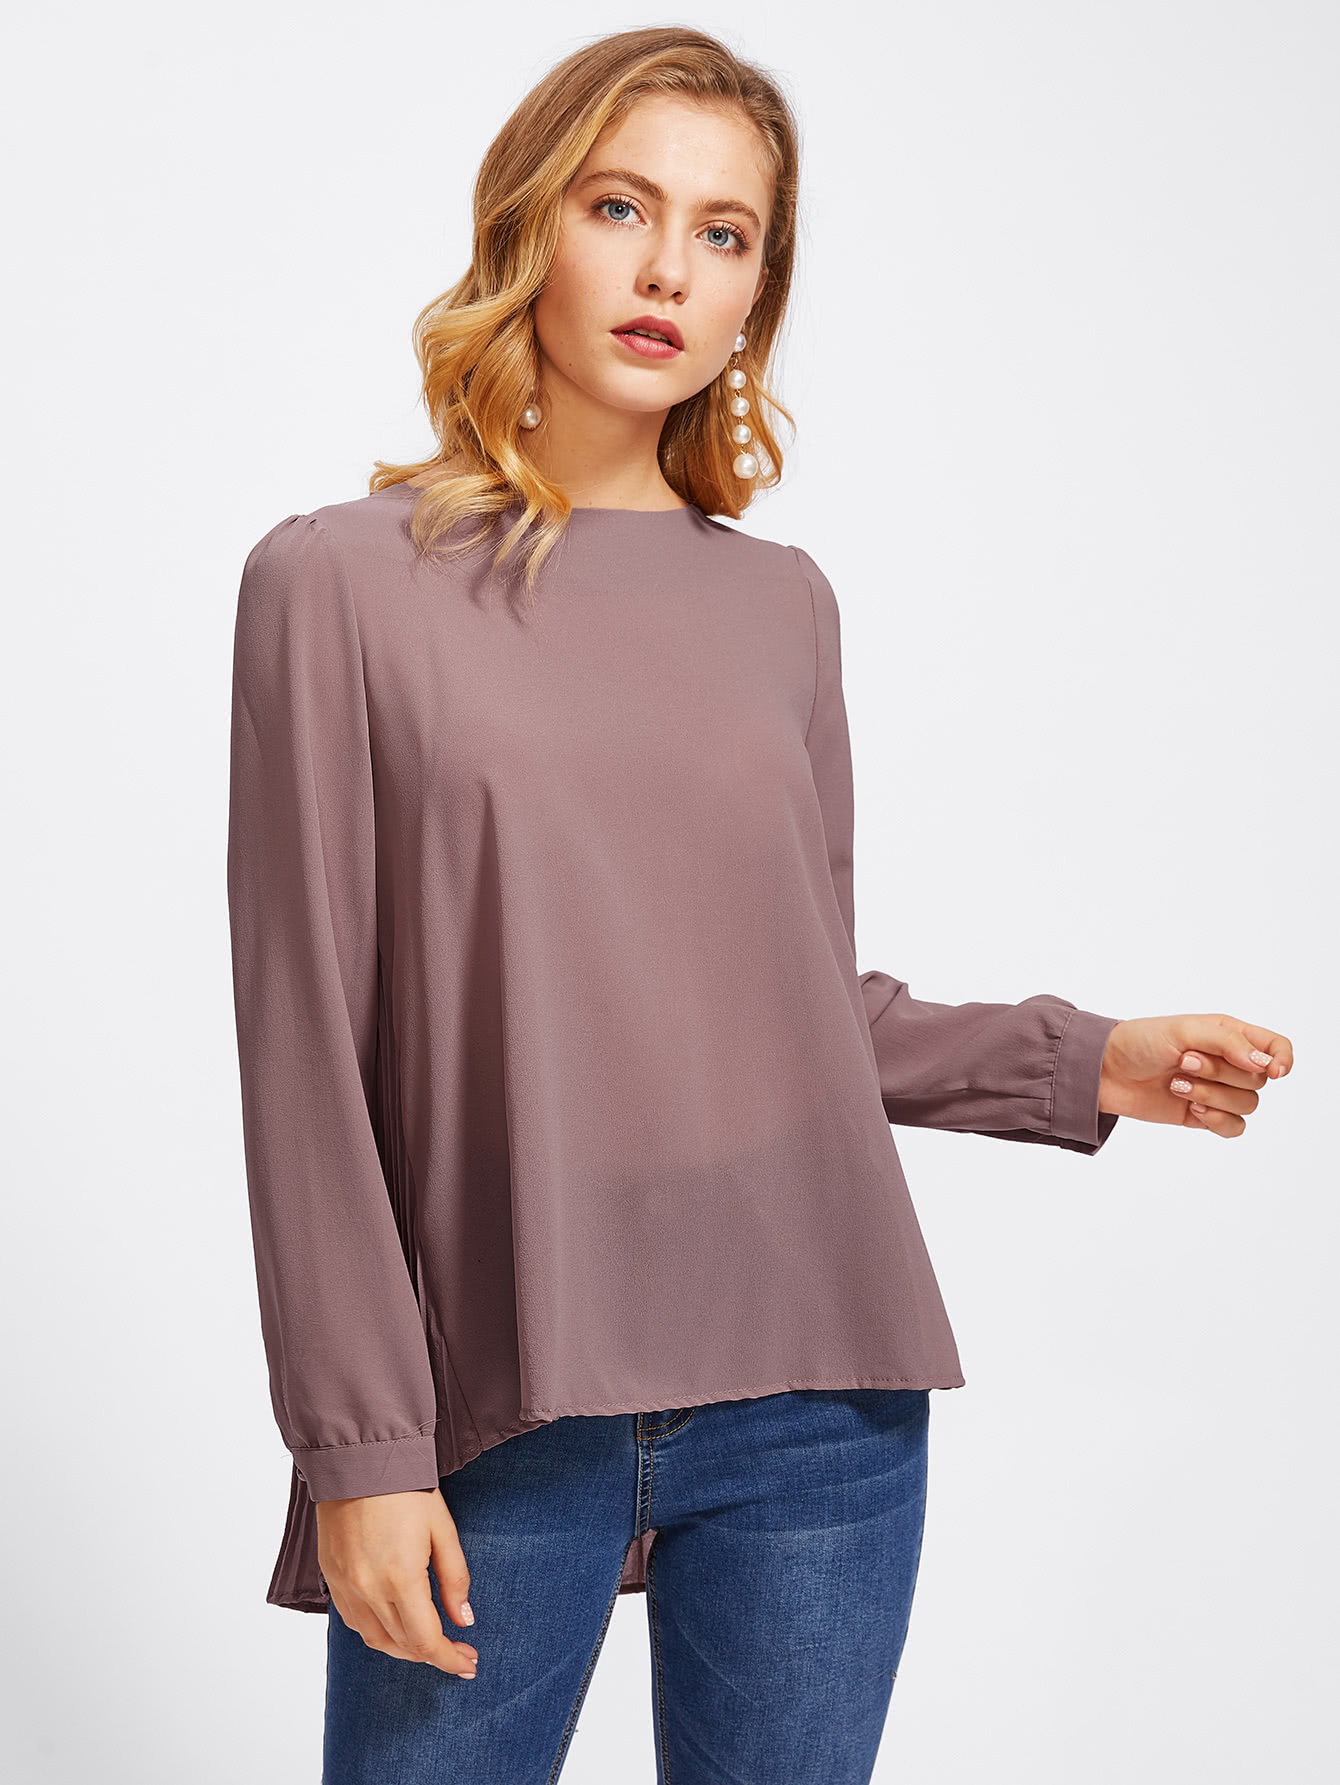 High Low Pleated Back Blouse blouse171030330